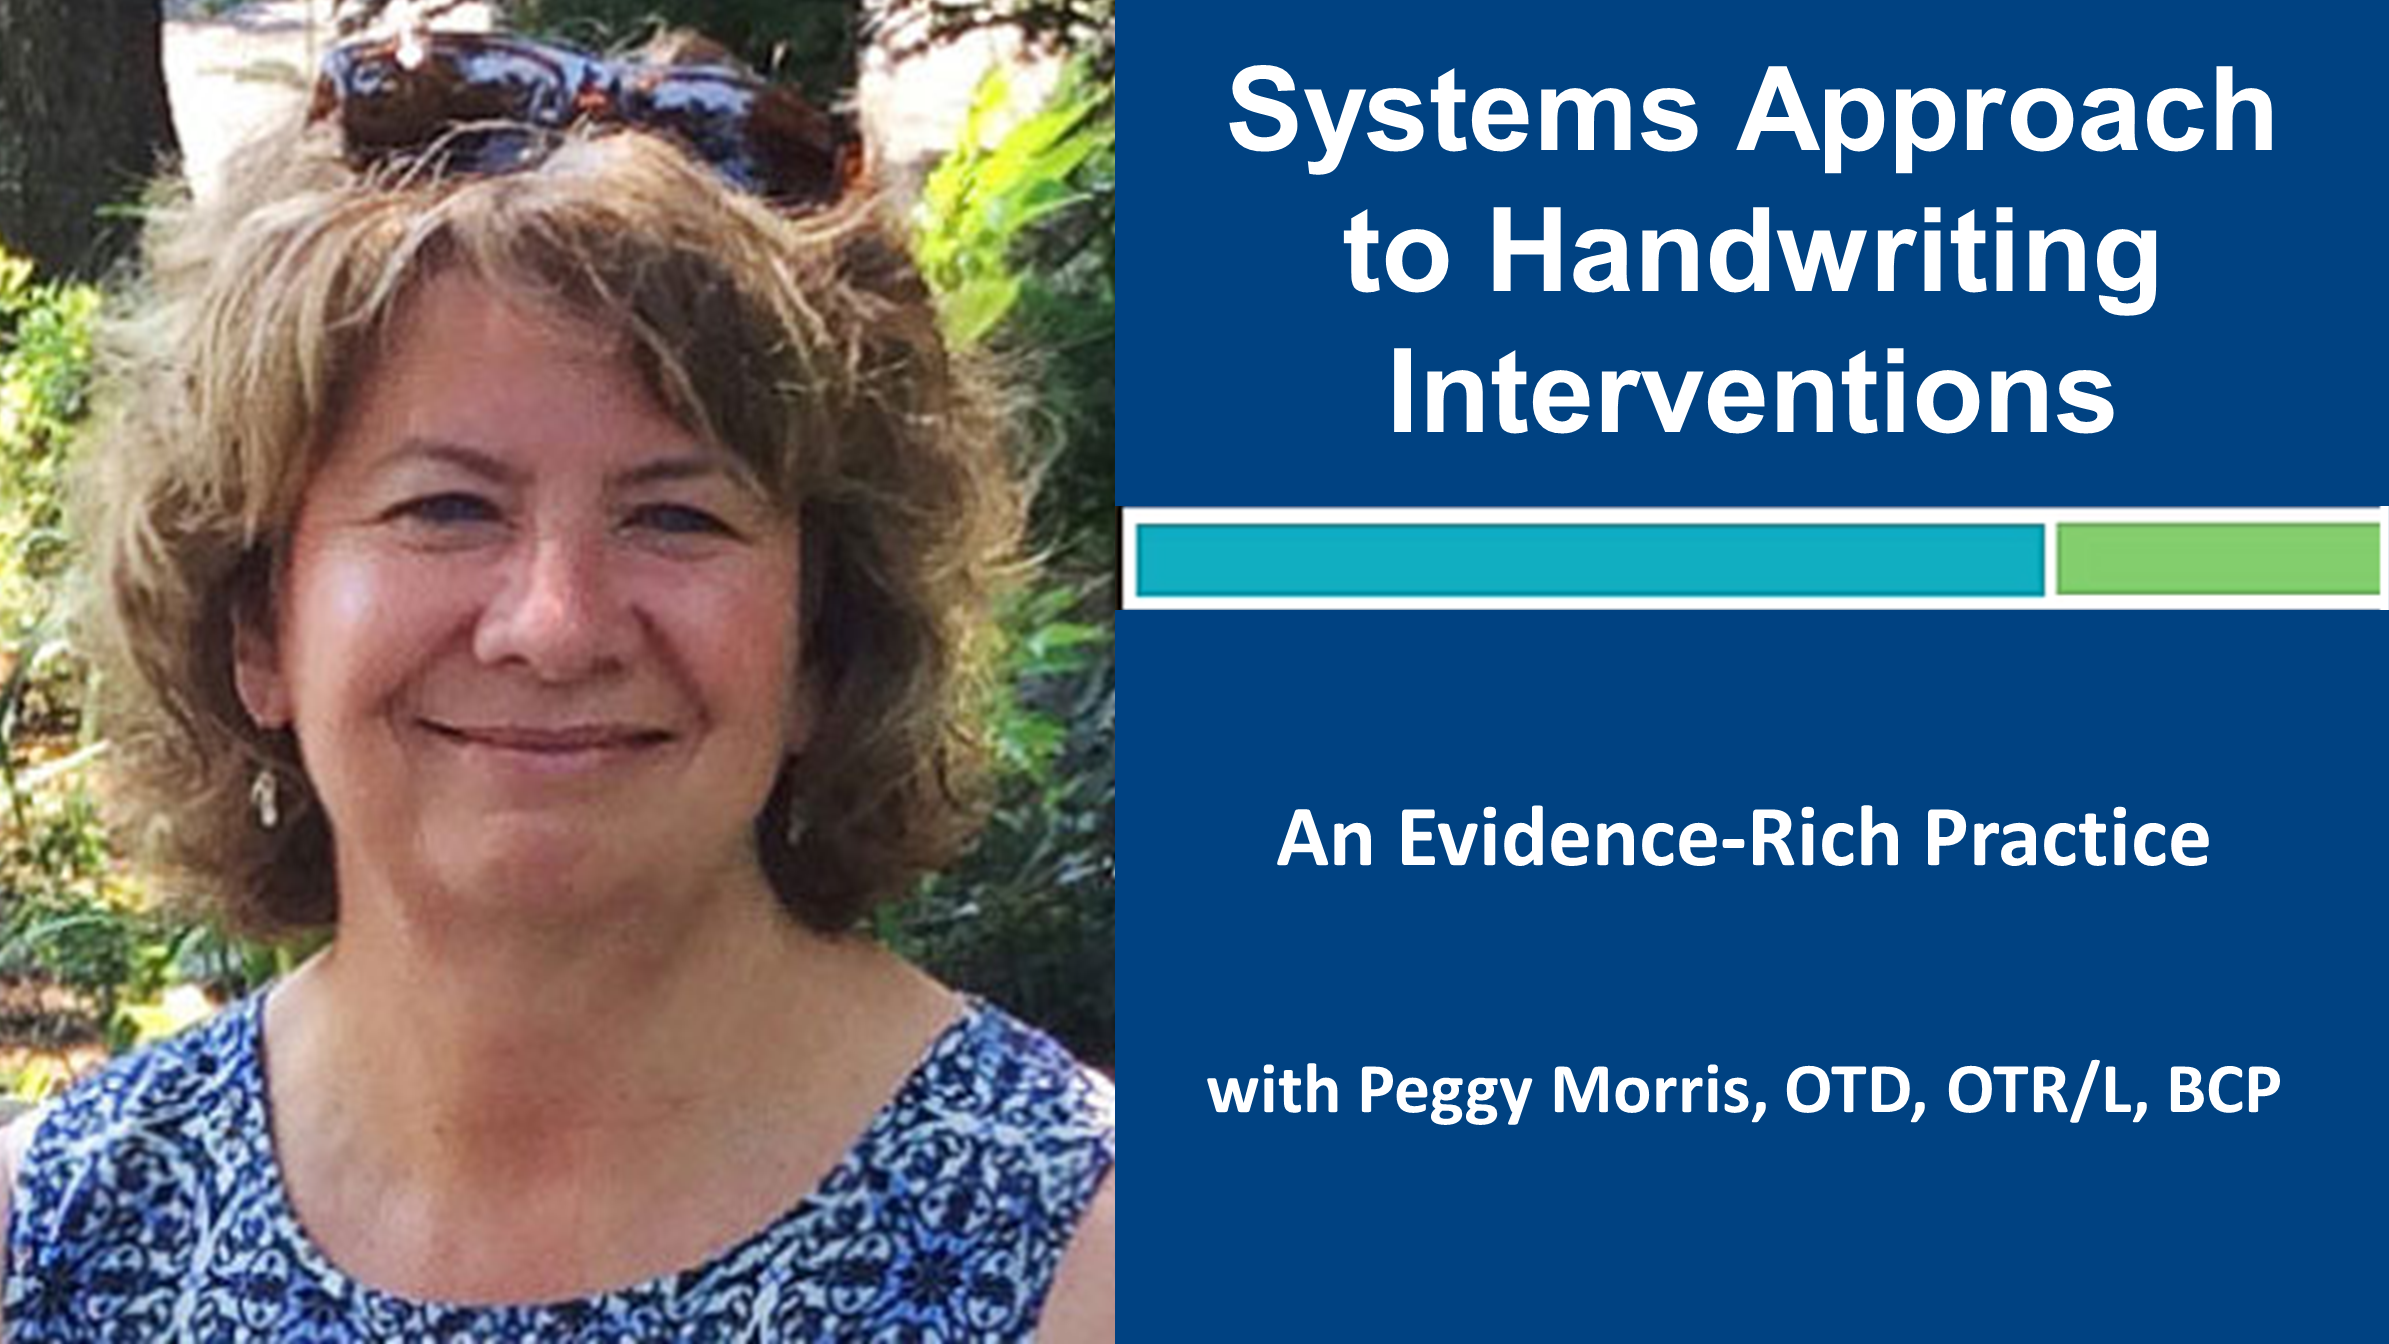 Webinar 3: Systems Approach to Handwriting Interventions with Peggy Morris, OTD, OTR/L, BCP